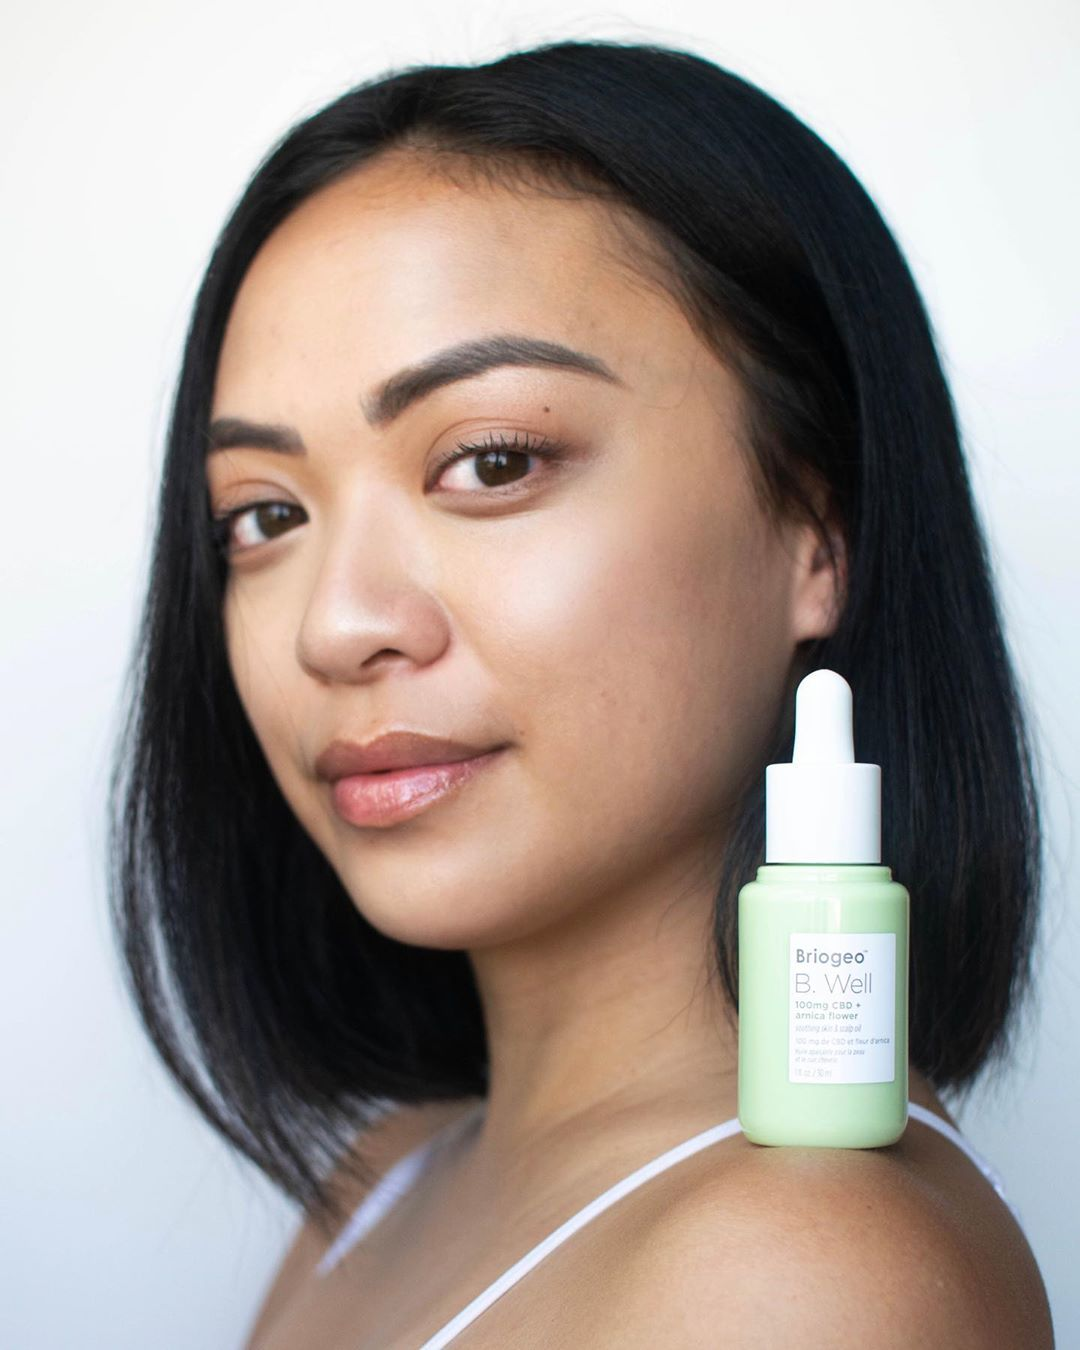 <p>Every masterpiece starts as a blank canvas and a little bit of self-love. Thanks to Briogeo 's new 100mg CBD + Arnica Flower Soothing Skin and Scalp Oil, my skin has been glowin' different! Nothing is better than loving the skin that I'm in. Most days, I go without wearing makeup, but on the days that I do, lately, it has been blending seamlessly because of the moisture that this product has given my skin. Compared to other oils that I've tried, this one is so lightweight and doesn't make me feel sticky!</p>